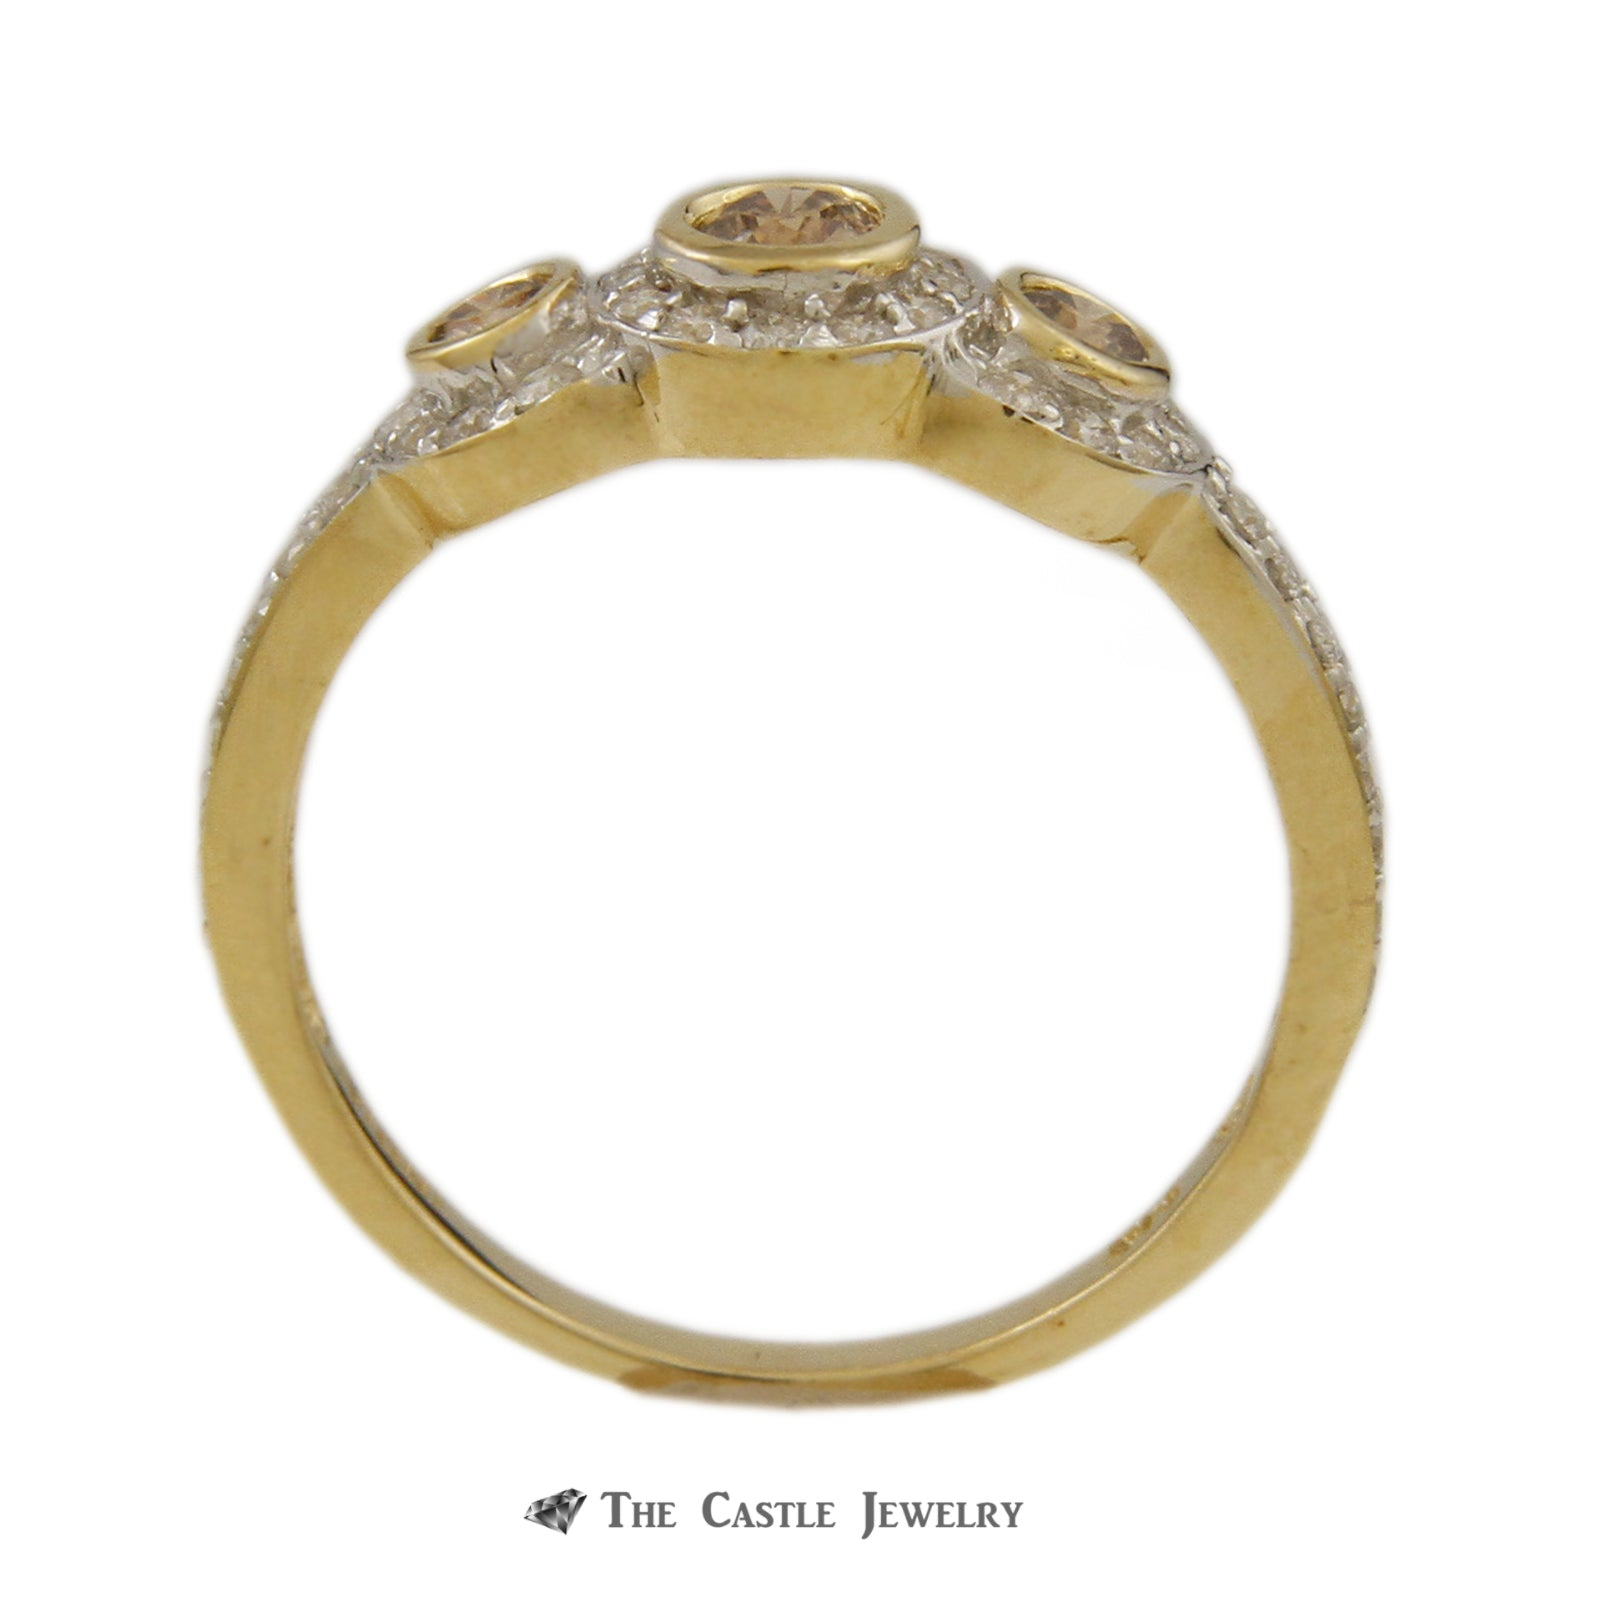 Bezel Set Champagne Diamond 3 Stone Ring with White Diamond Halos & Mounting in Yellow Gold-1